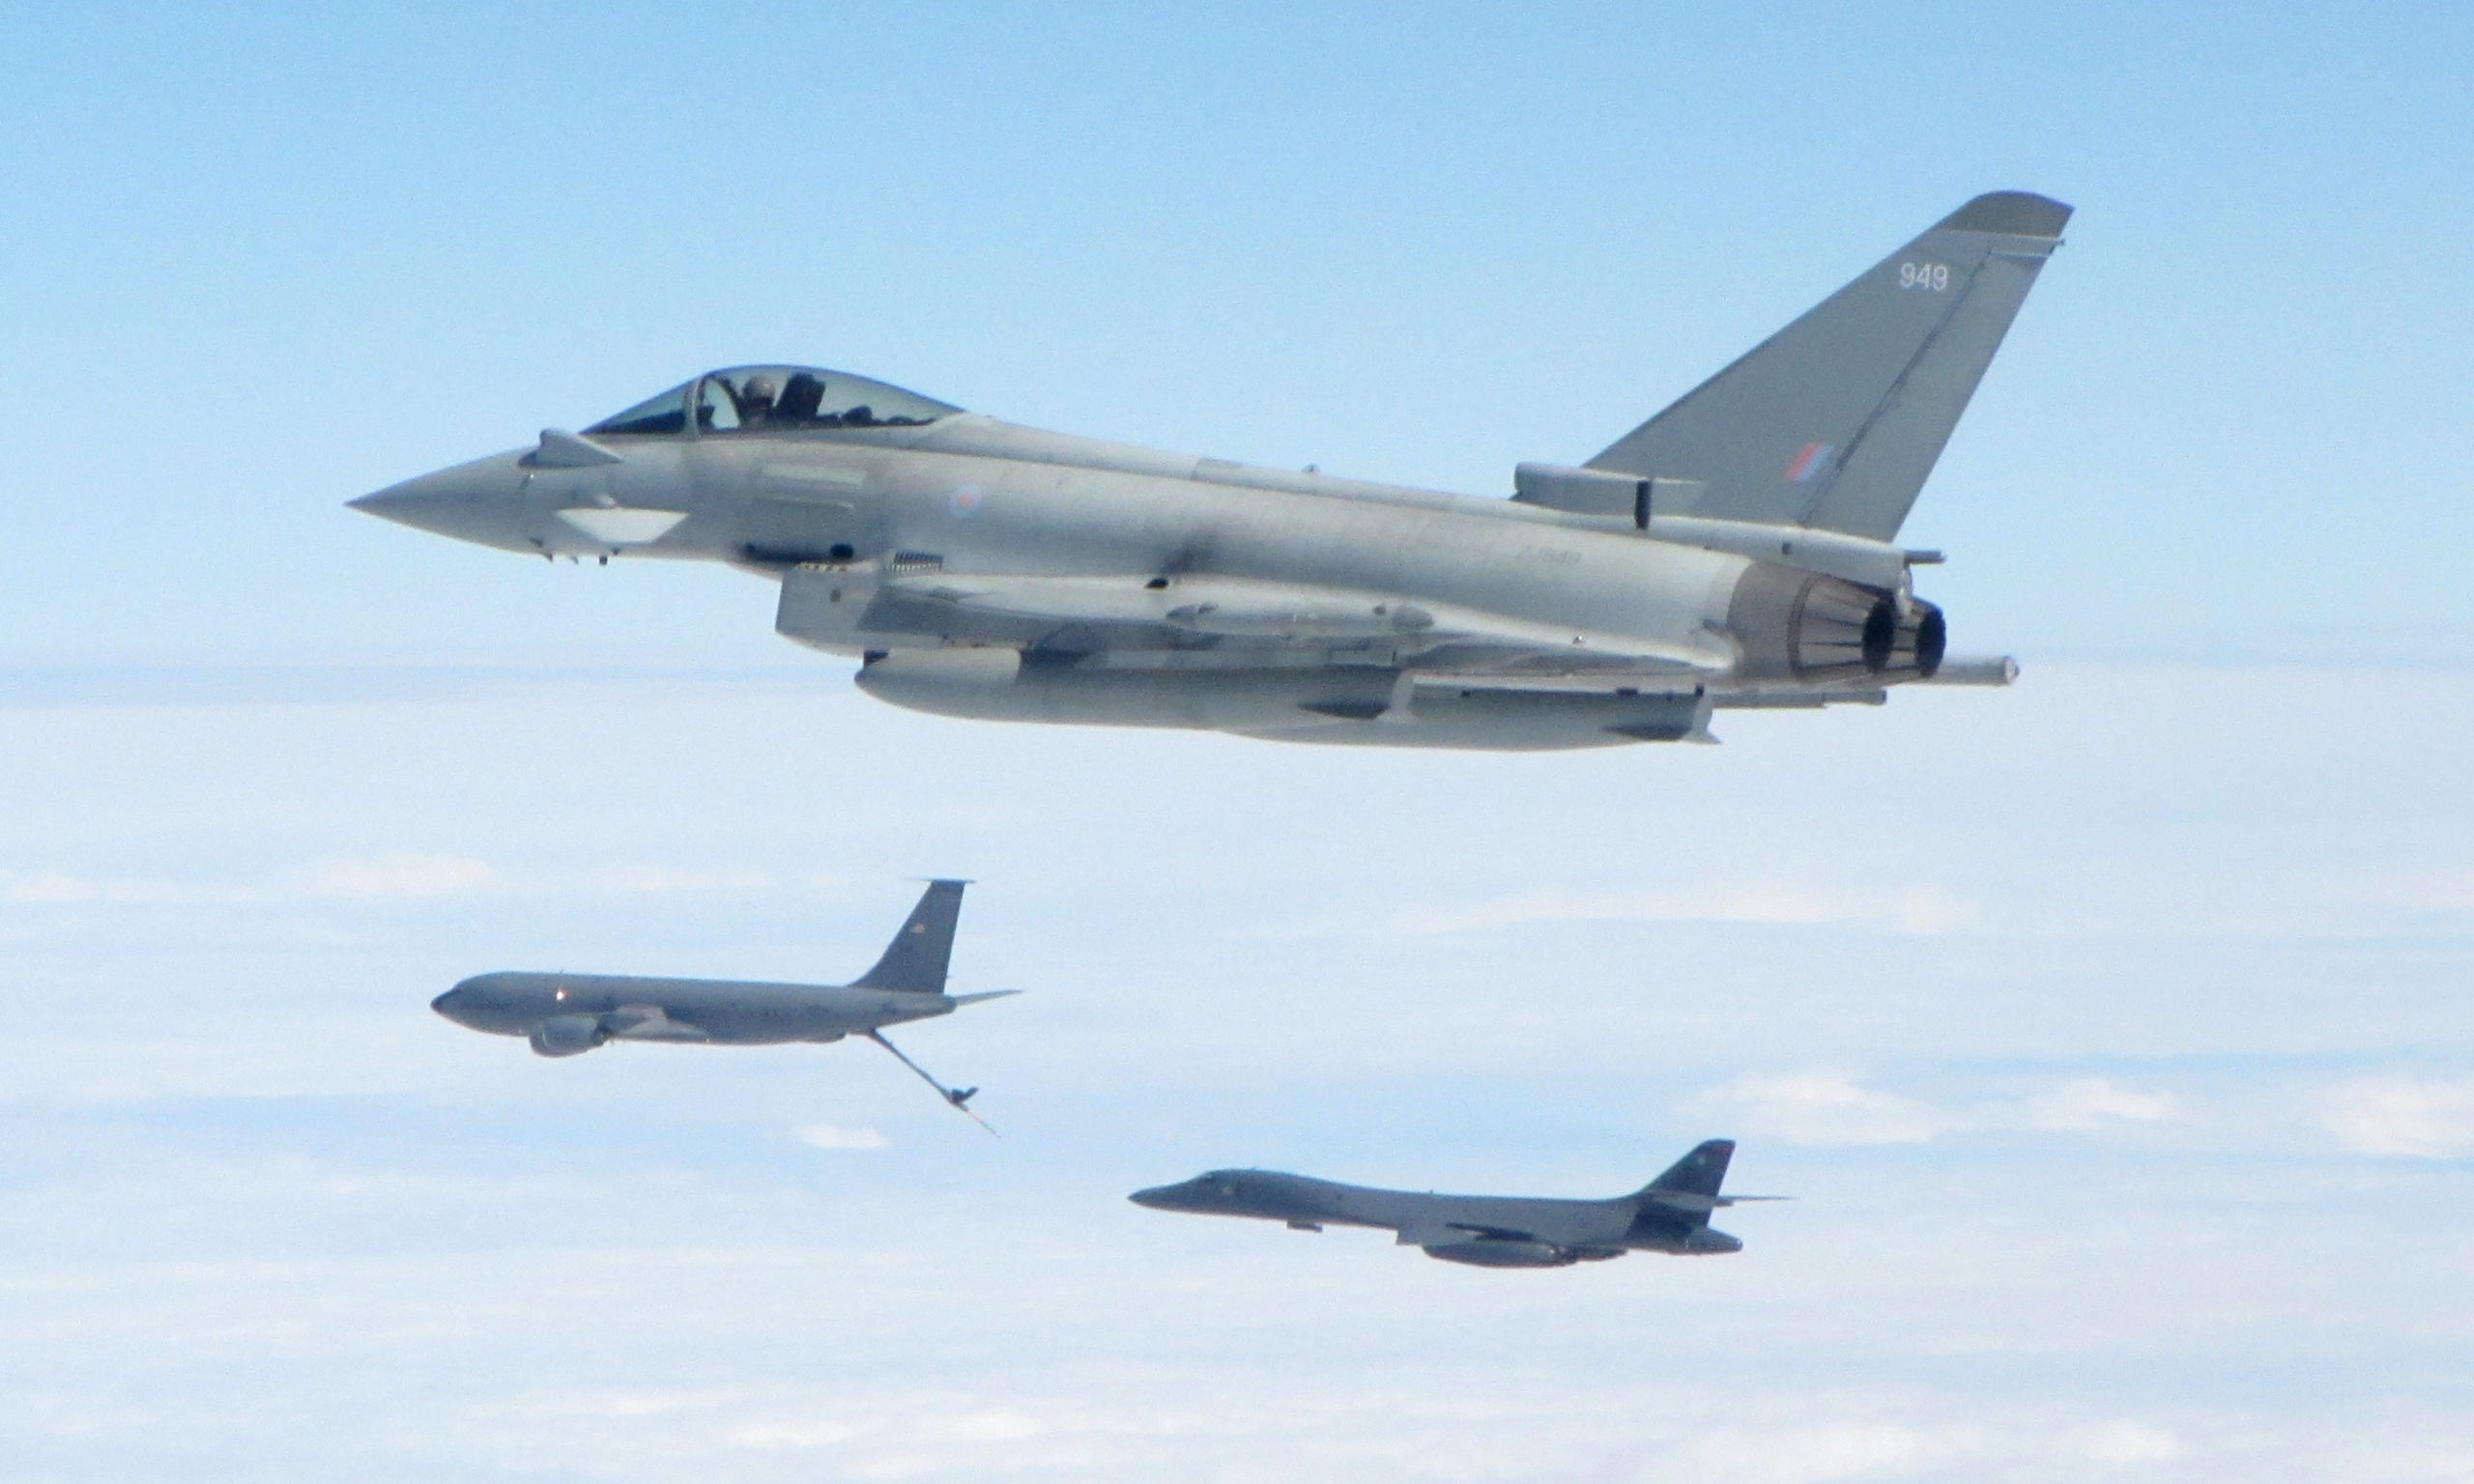 1 (F) Squadron Typhoons, based at RAF Lossiemouth on a previous mission